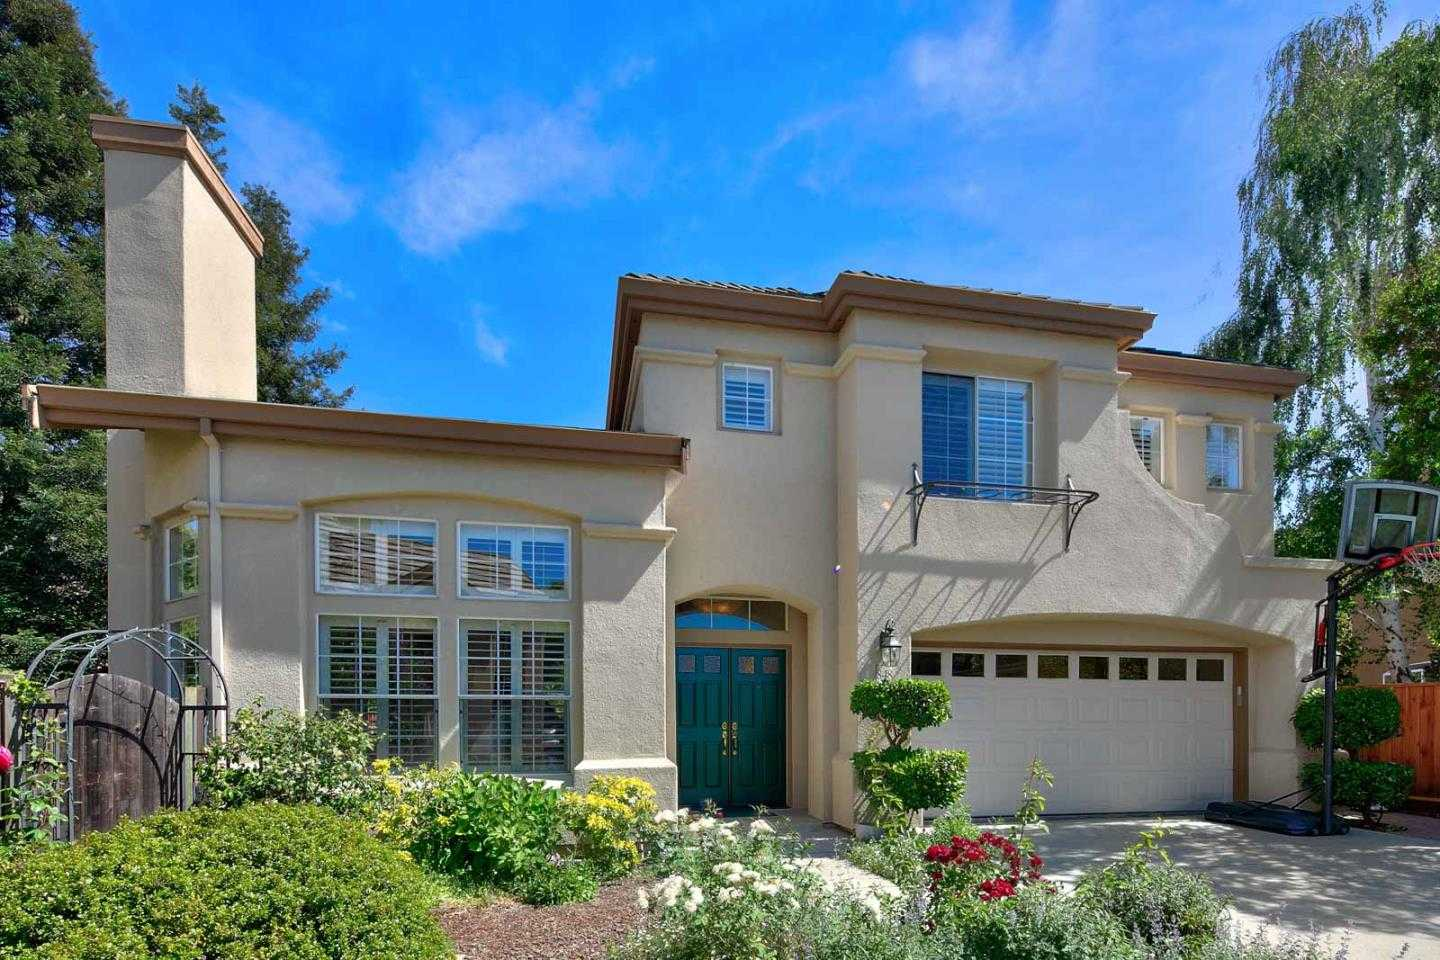 $2,888,000 - 5Br/3Ba -  for Sale in Sunnyvale